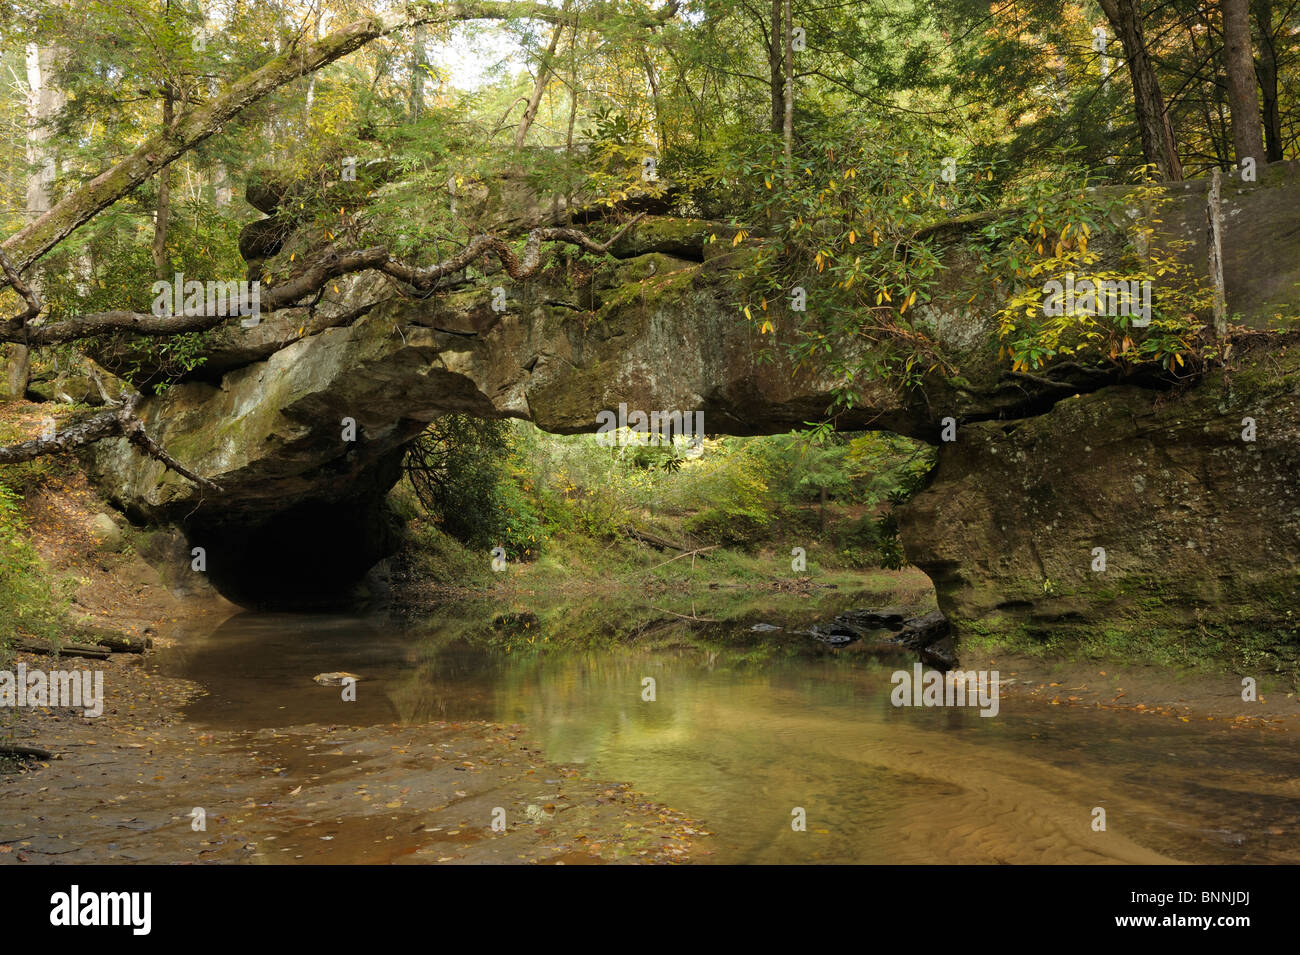 Rocky Creek arch arch Daniel Boone National Forest La Red River Gorge Kentucky USA zone géologique Photo Stock